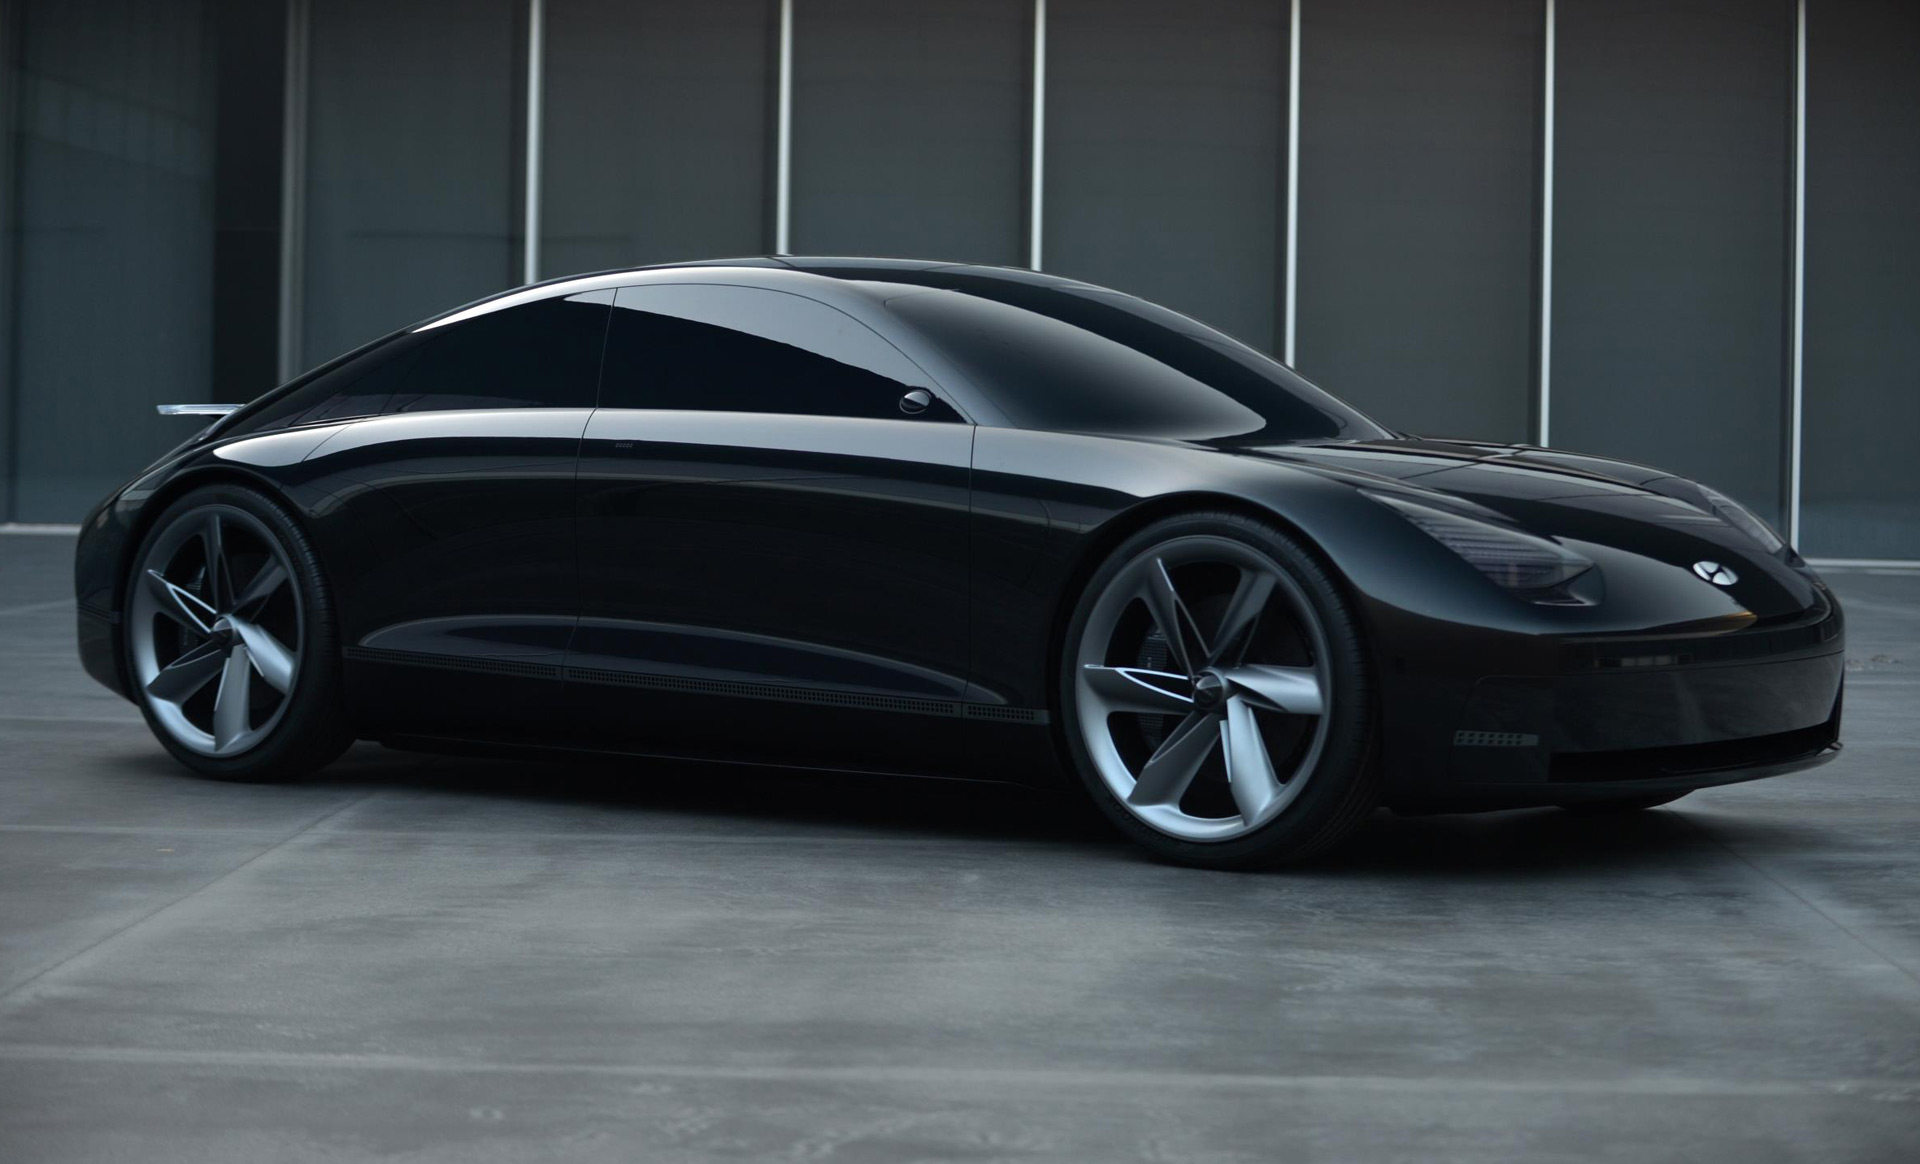 Hyundai Prophecy Concept Is A Sleek Sporty Ev With No Steering Wheel